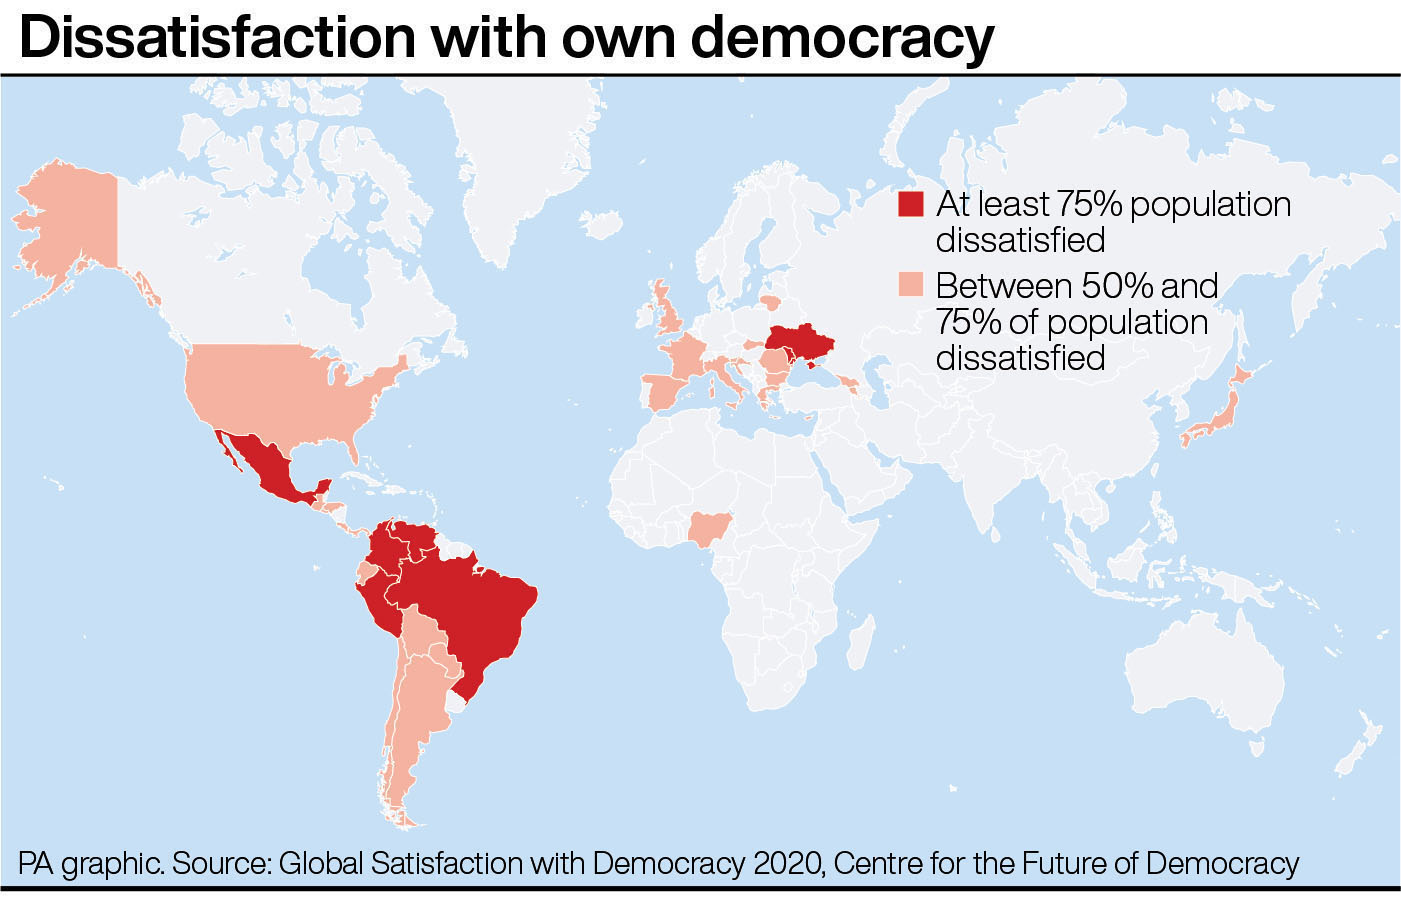 Dissatisfaction with own democracy